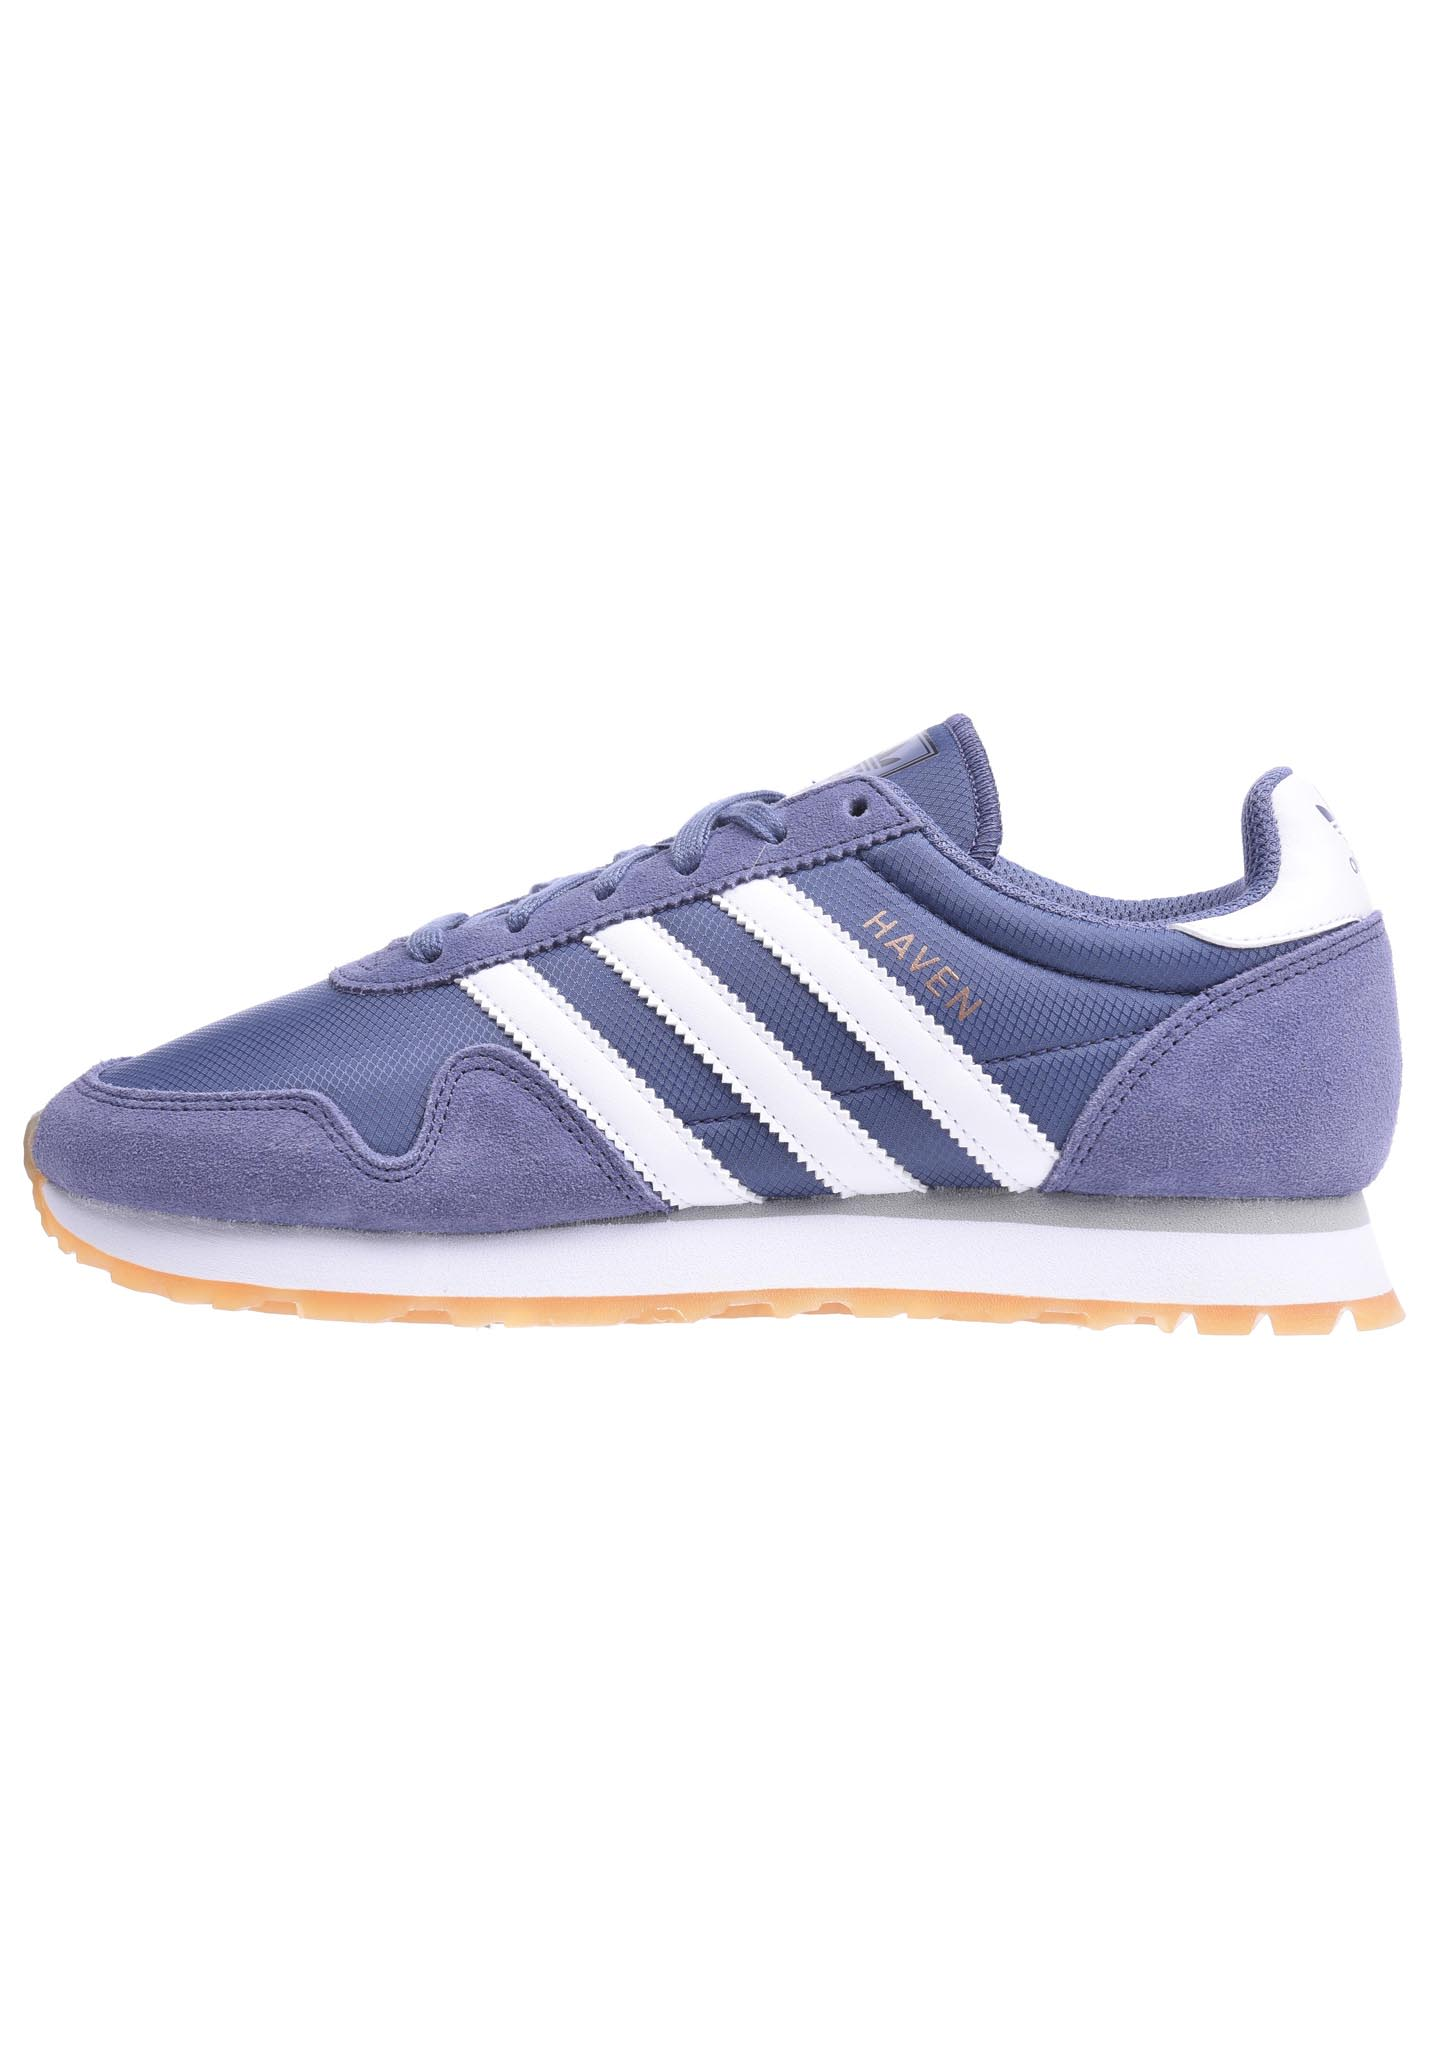 adidas Originals Haven - Sneaker für Damen - Lila